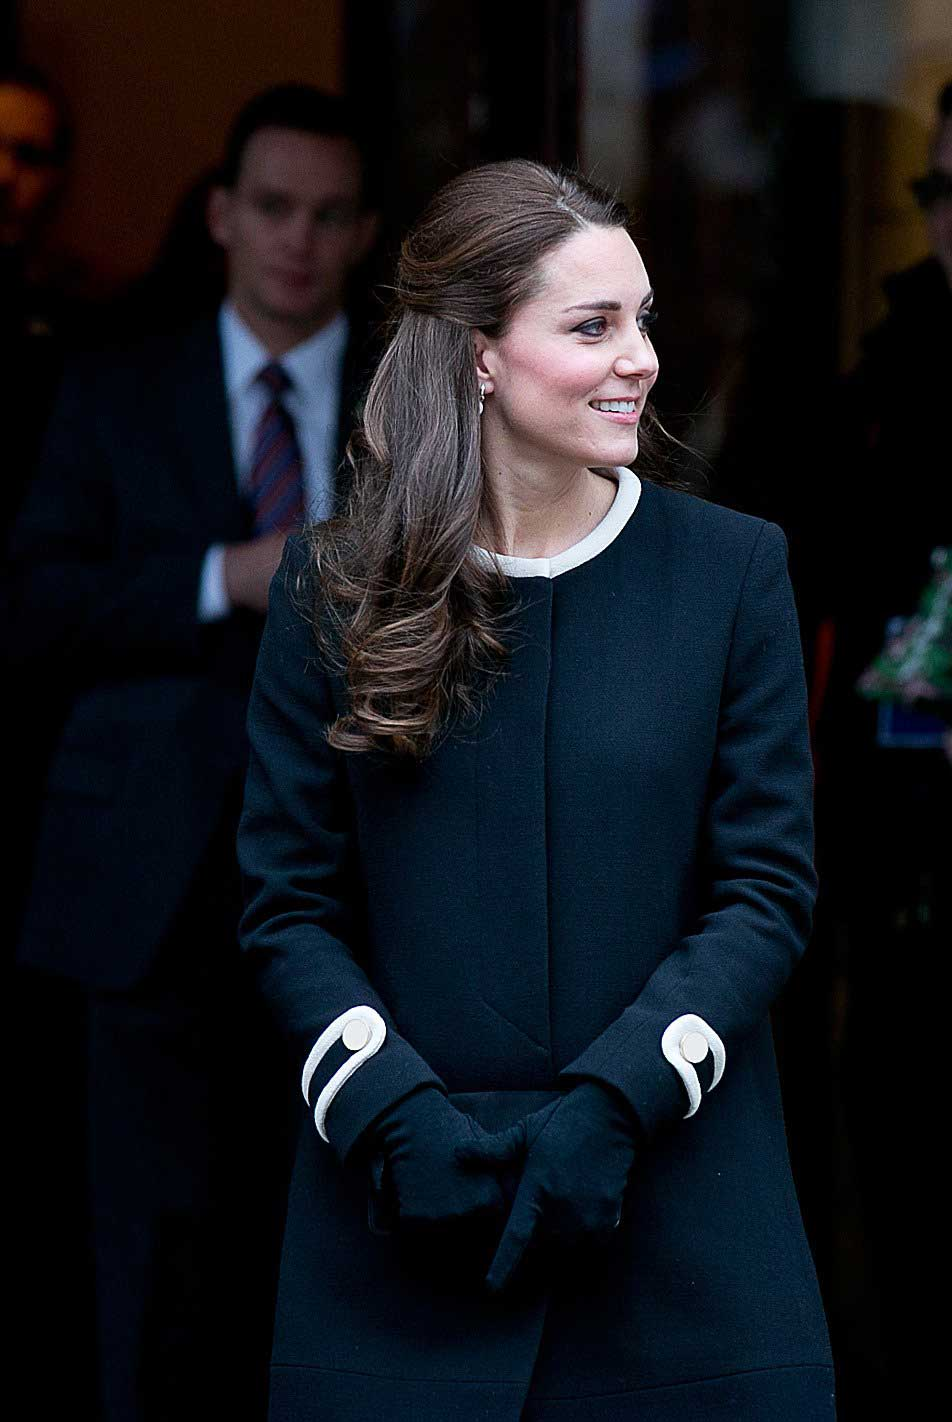 Catherine, Duchess of Cambridge at the Northside Center for Child Development in Harlem, New York on Dec. 8, 2014.